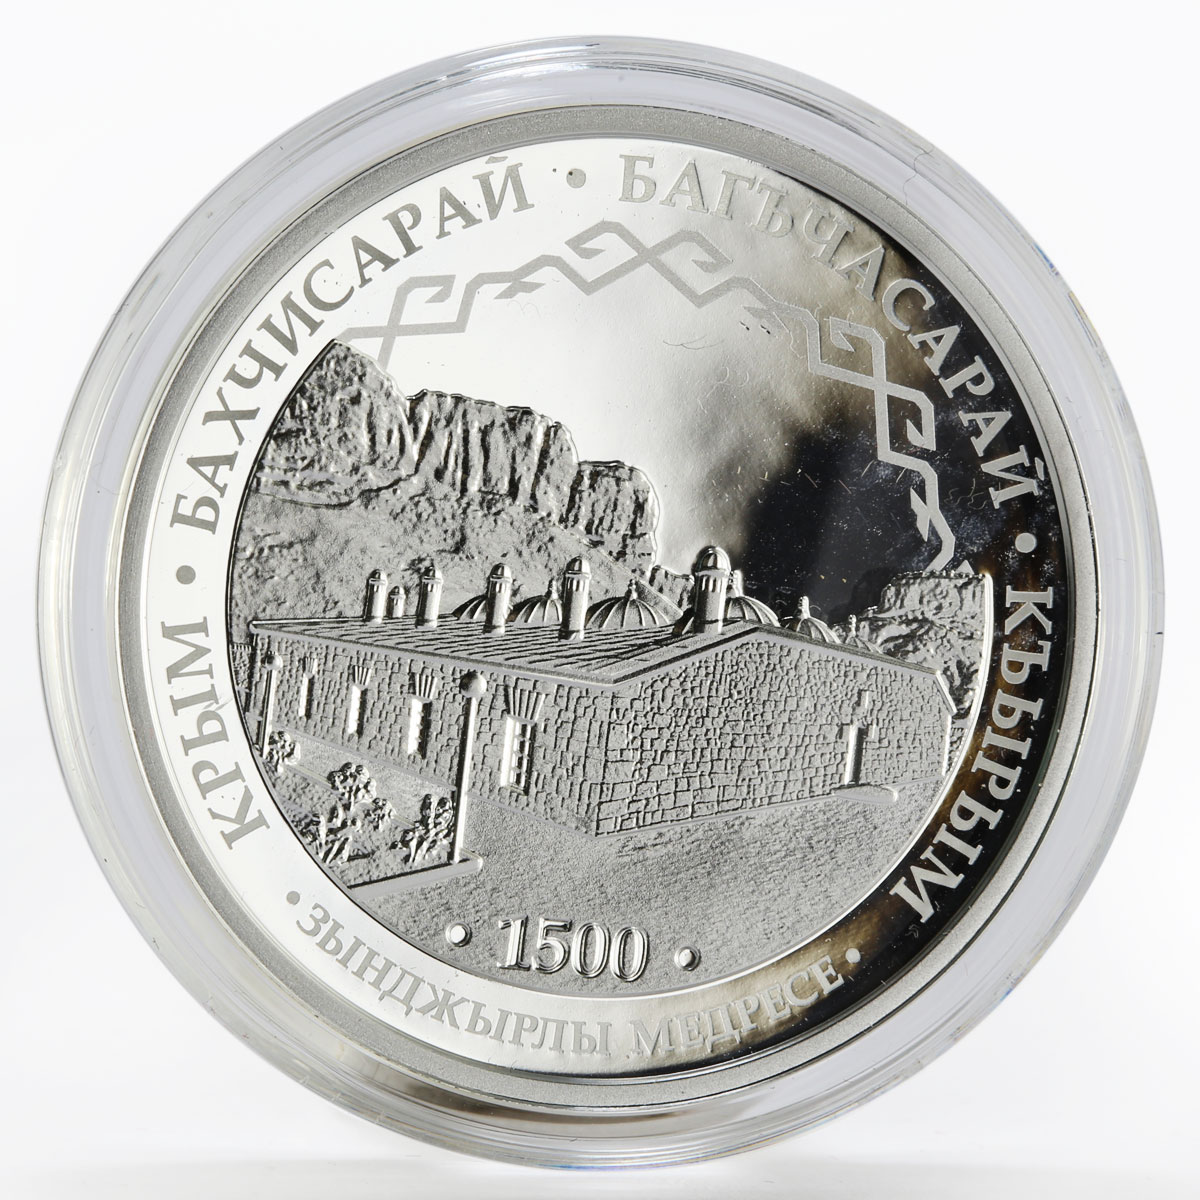 Cameroon 500 francs The Zincirli Madrasa University proof silver coin 2017